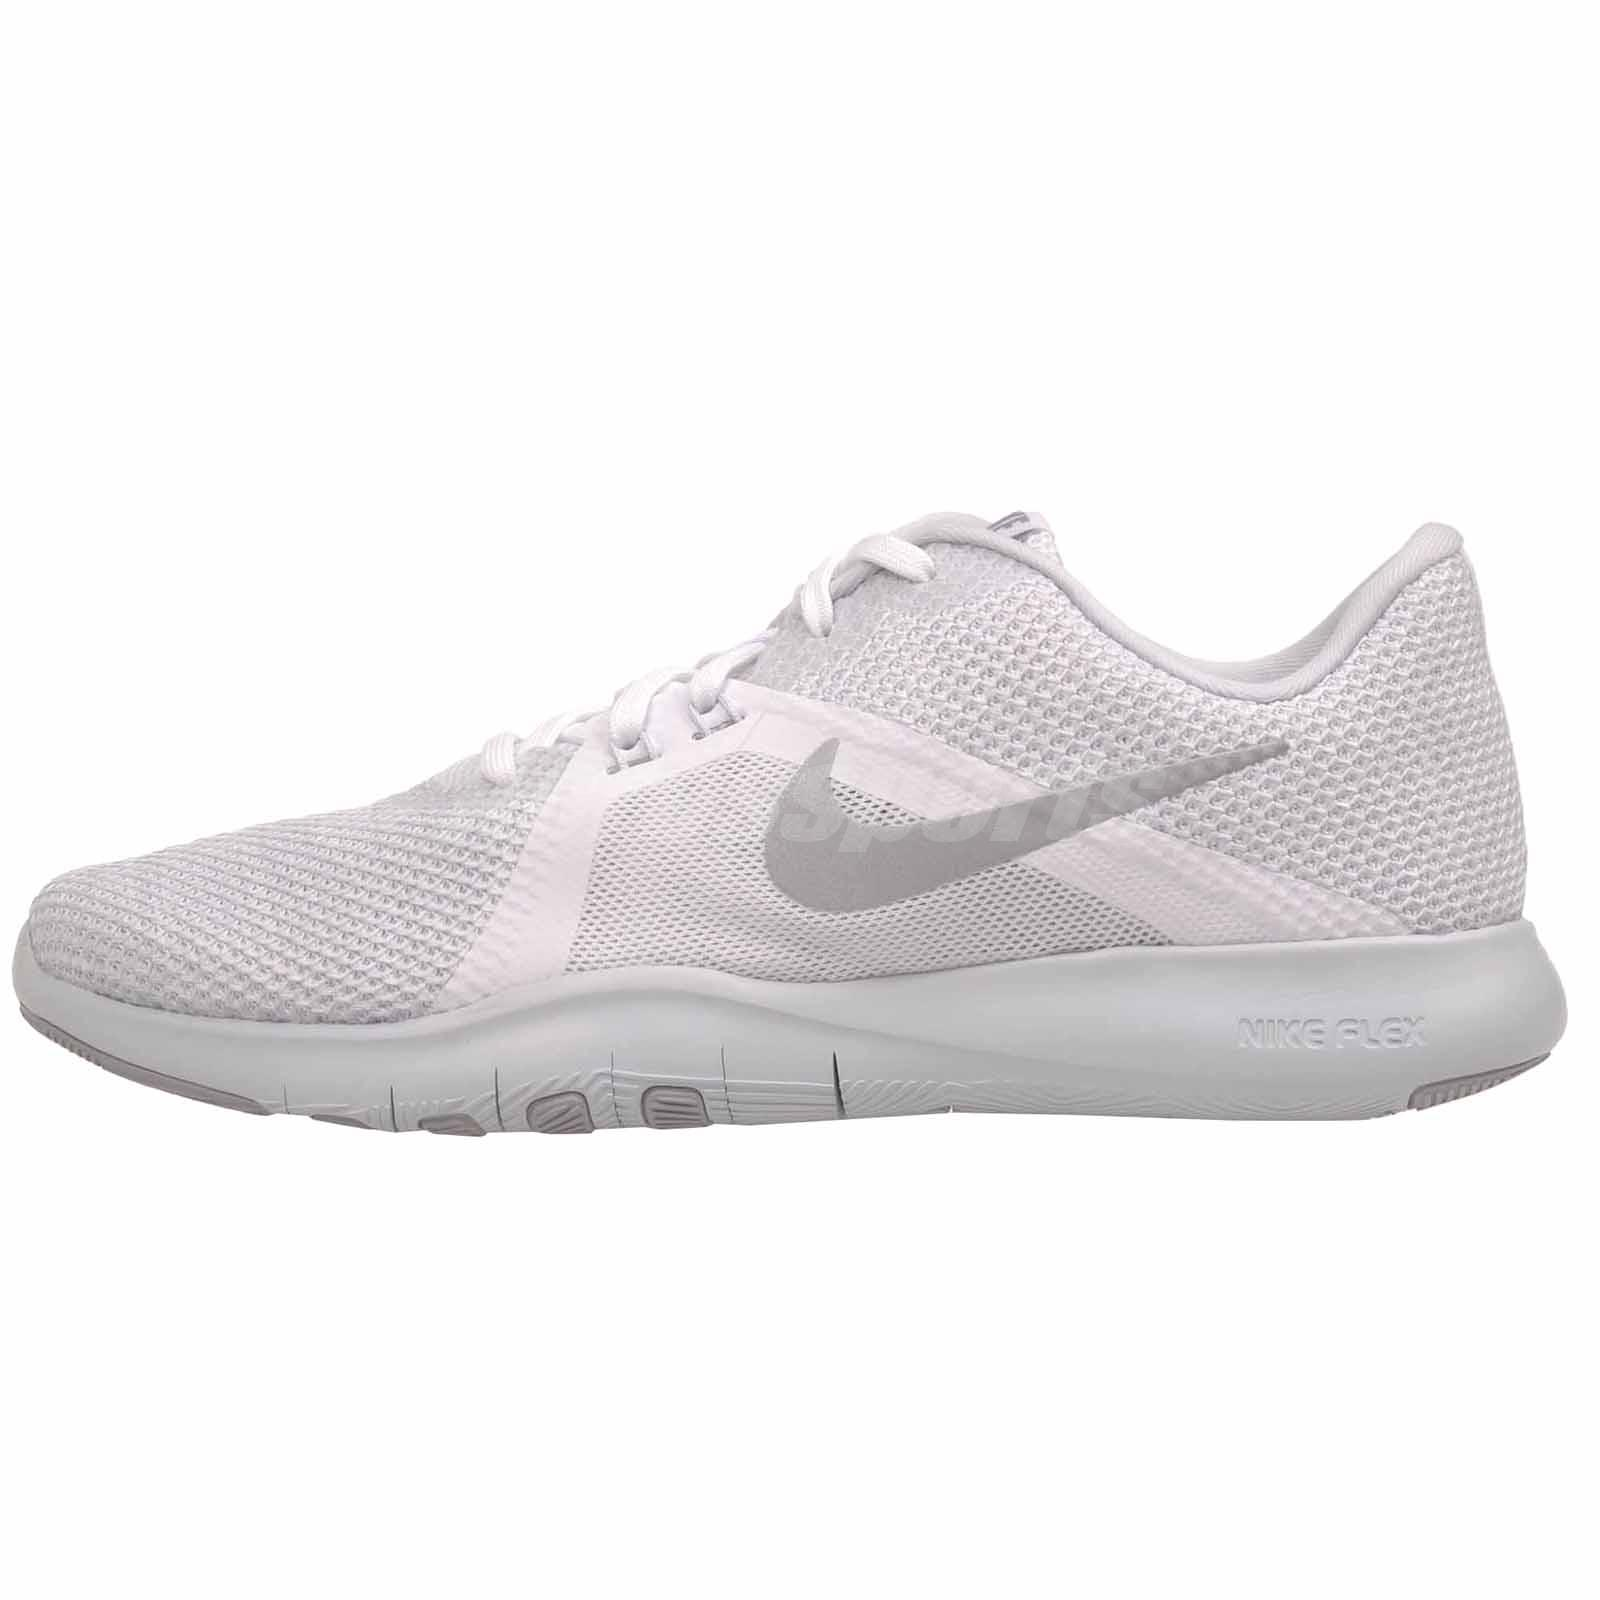 superior quality df395 02568 Details about Nike W Flex Trainer 8 Cross Training Womens Shoes White  Silver 924339-100